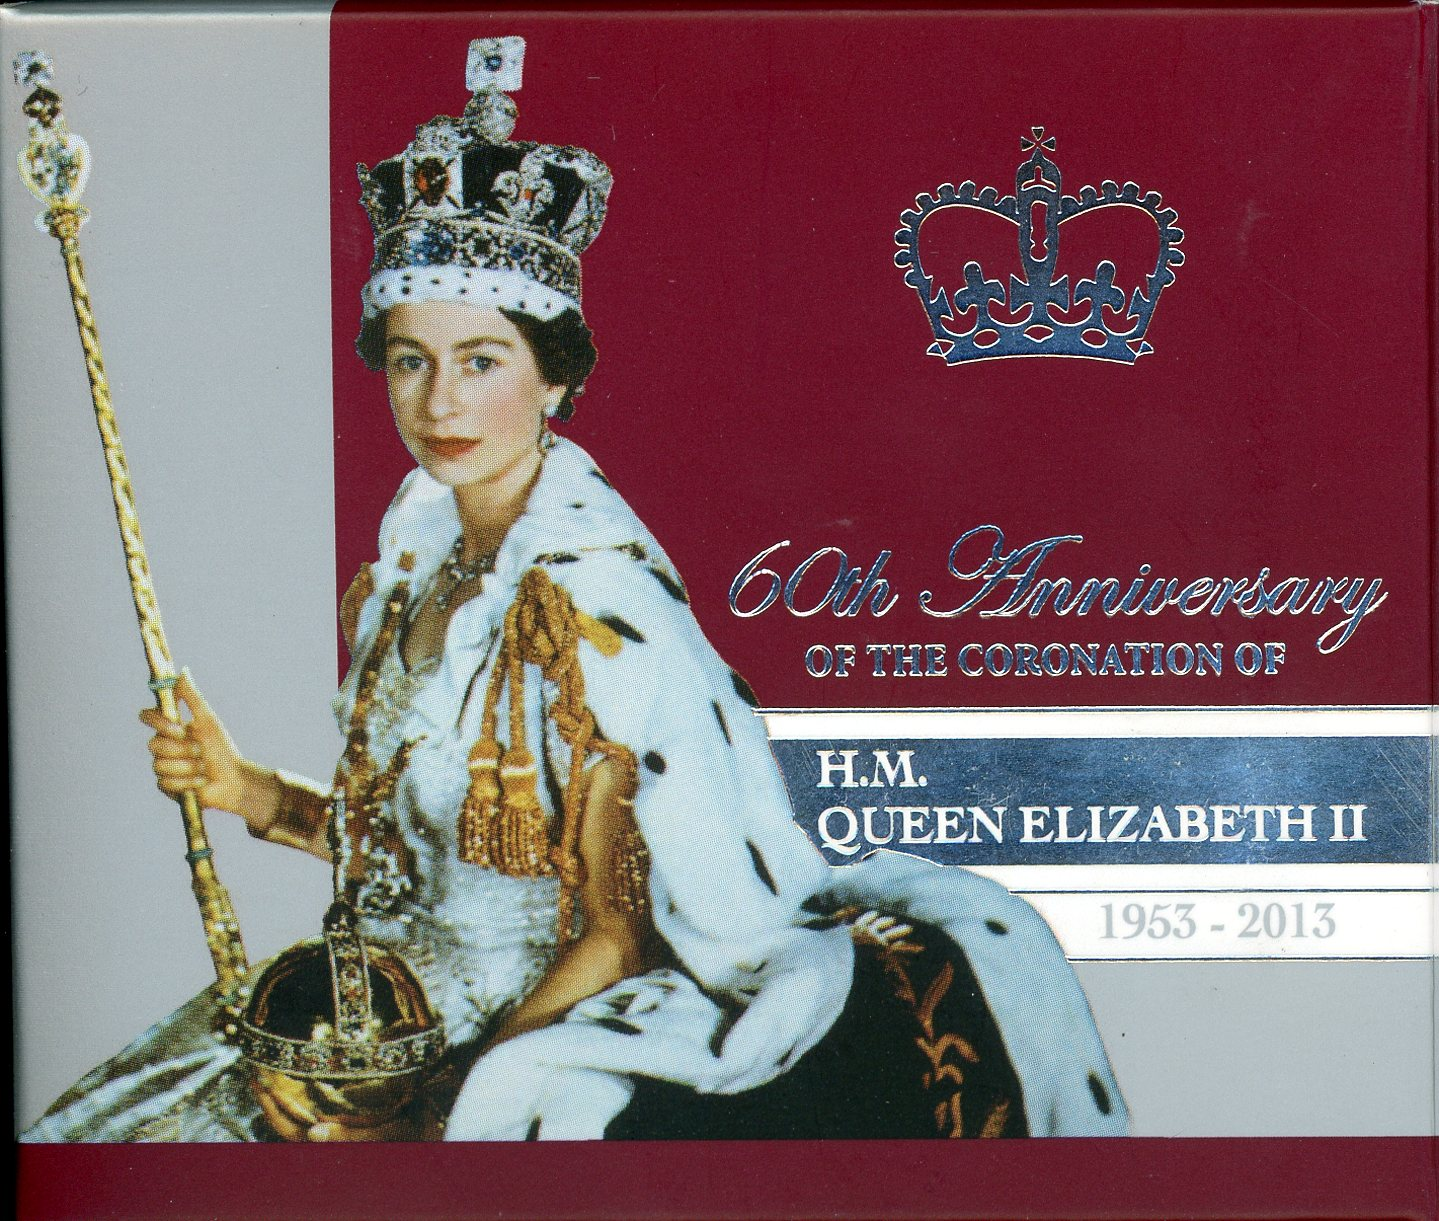 Thumbnail for 2013 1oz Silver Proof Coin 60th Anniversary of the Coronation of Queen Elizabeth II